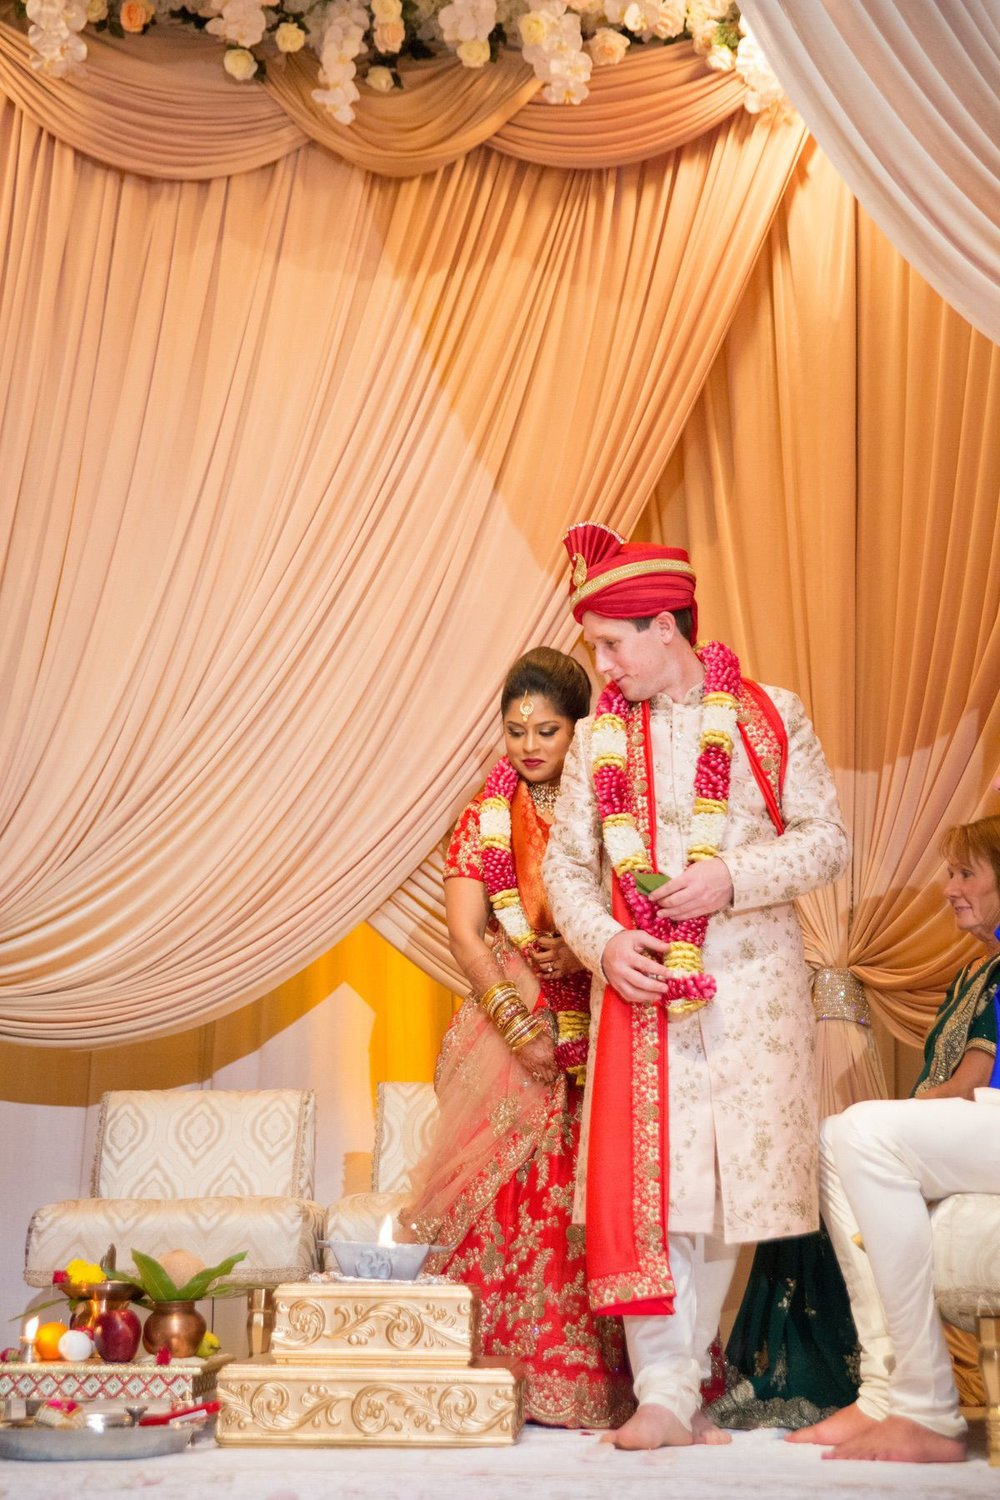 Le Cape Weddings - South Asian Wedding - Trisha and Jordan - Ceremony -94.jpg